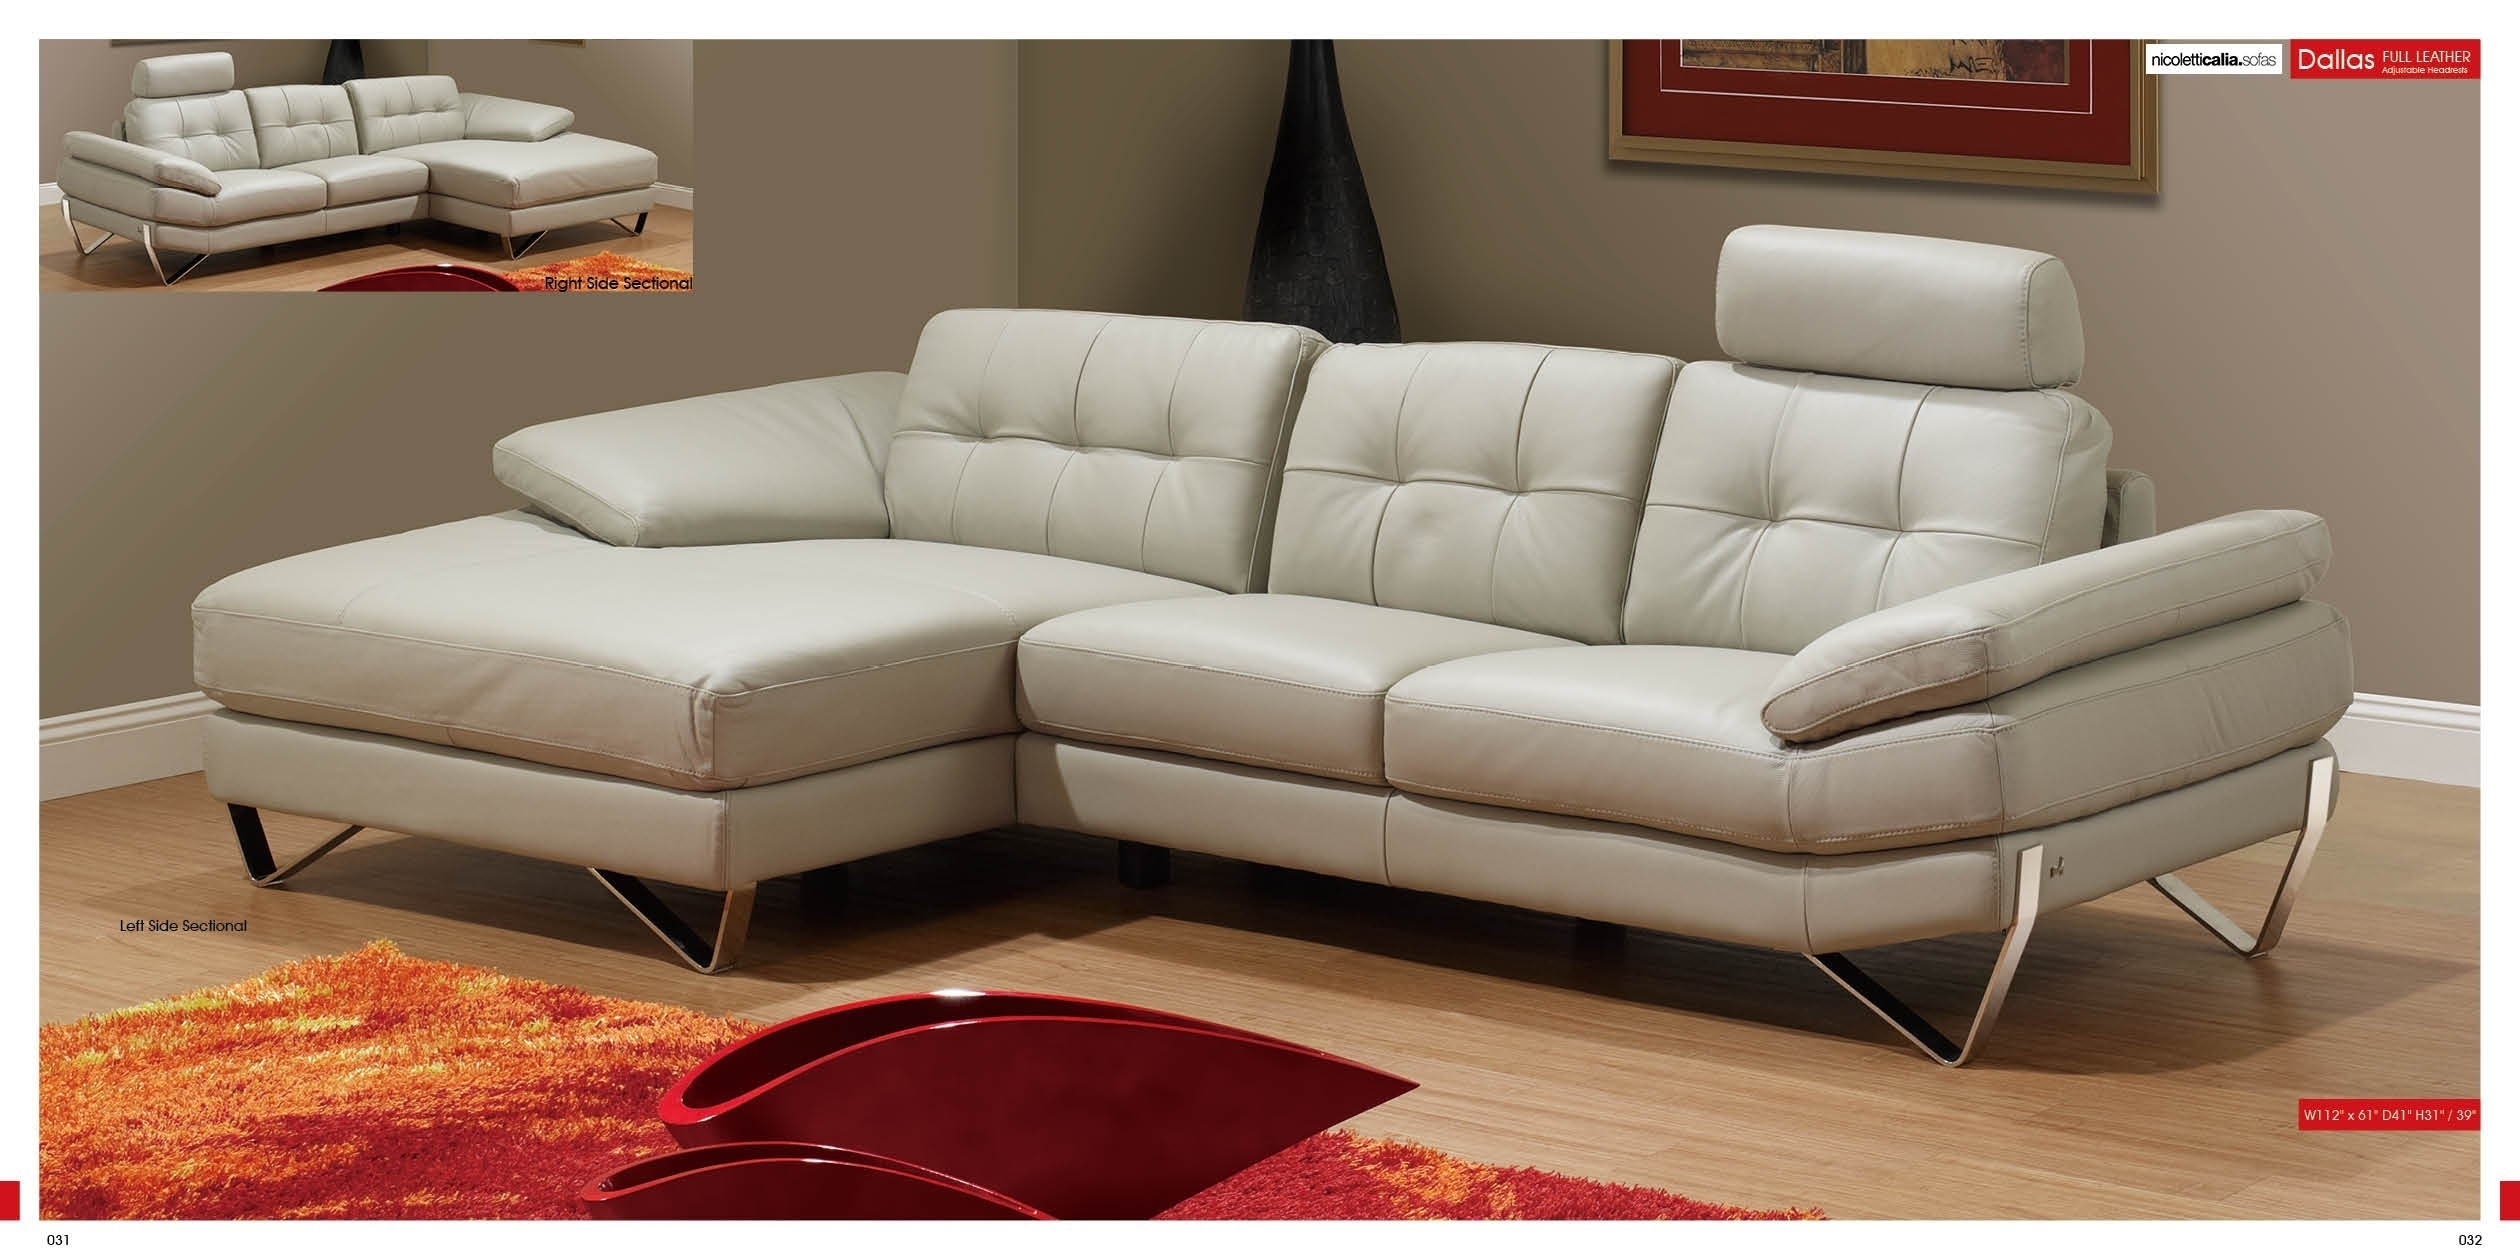 Lovely Living Room Furniture Dallas With Sectional Sofas Dallas Regarding Dallas Sectional Sofas (Image 4 of 10)